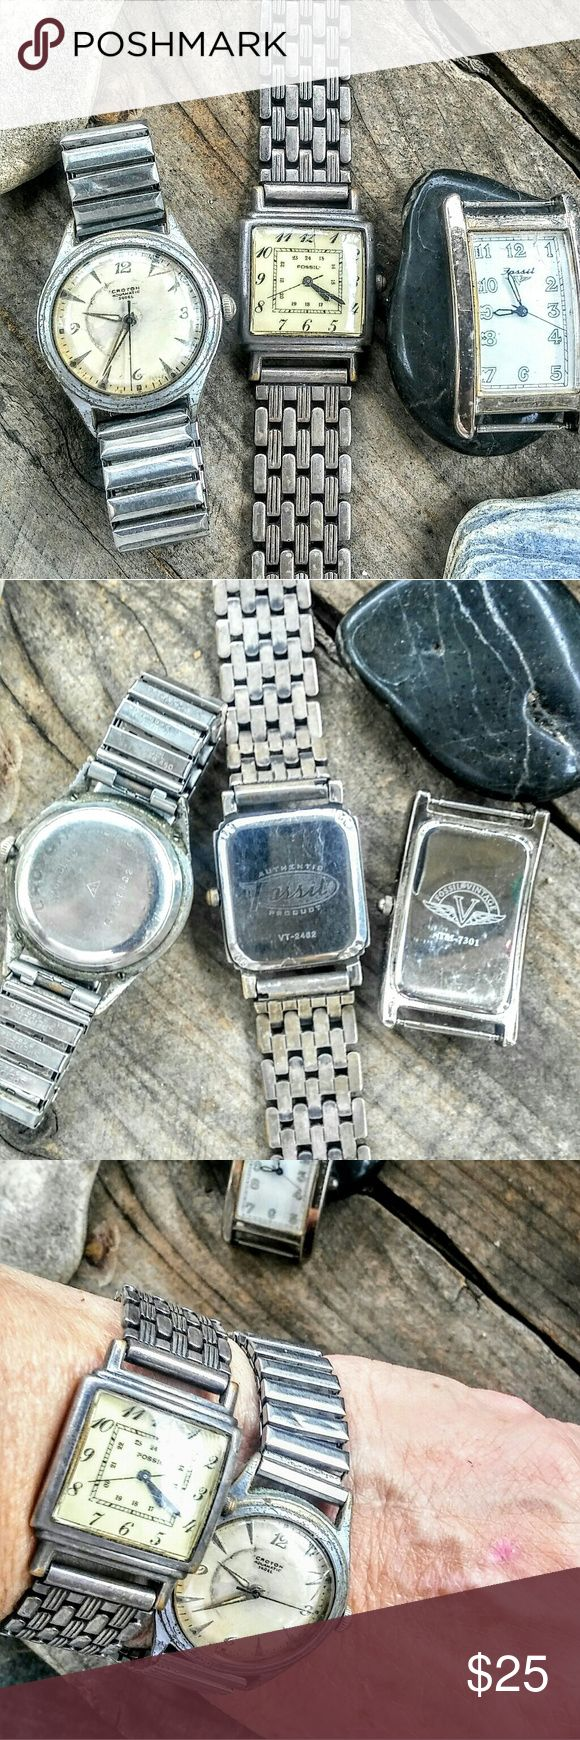 Three Assorted As Is Vintage Fossil Watches Three Assorted As Is Vintage Fossil Watches One Vintage Watch is Criton As Is, Working Condition Unknown Will Need Repair Very Cool Retro Styles Fun Artistic Project to Transform Fossil Accessories Watches